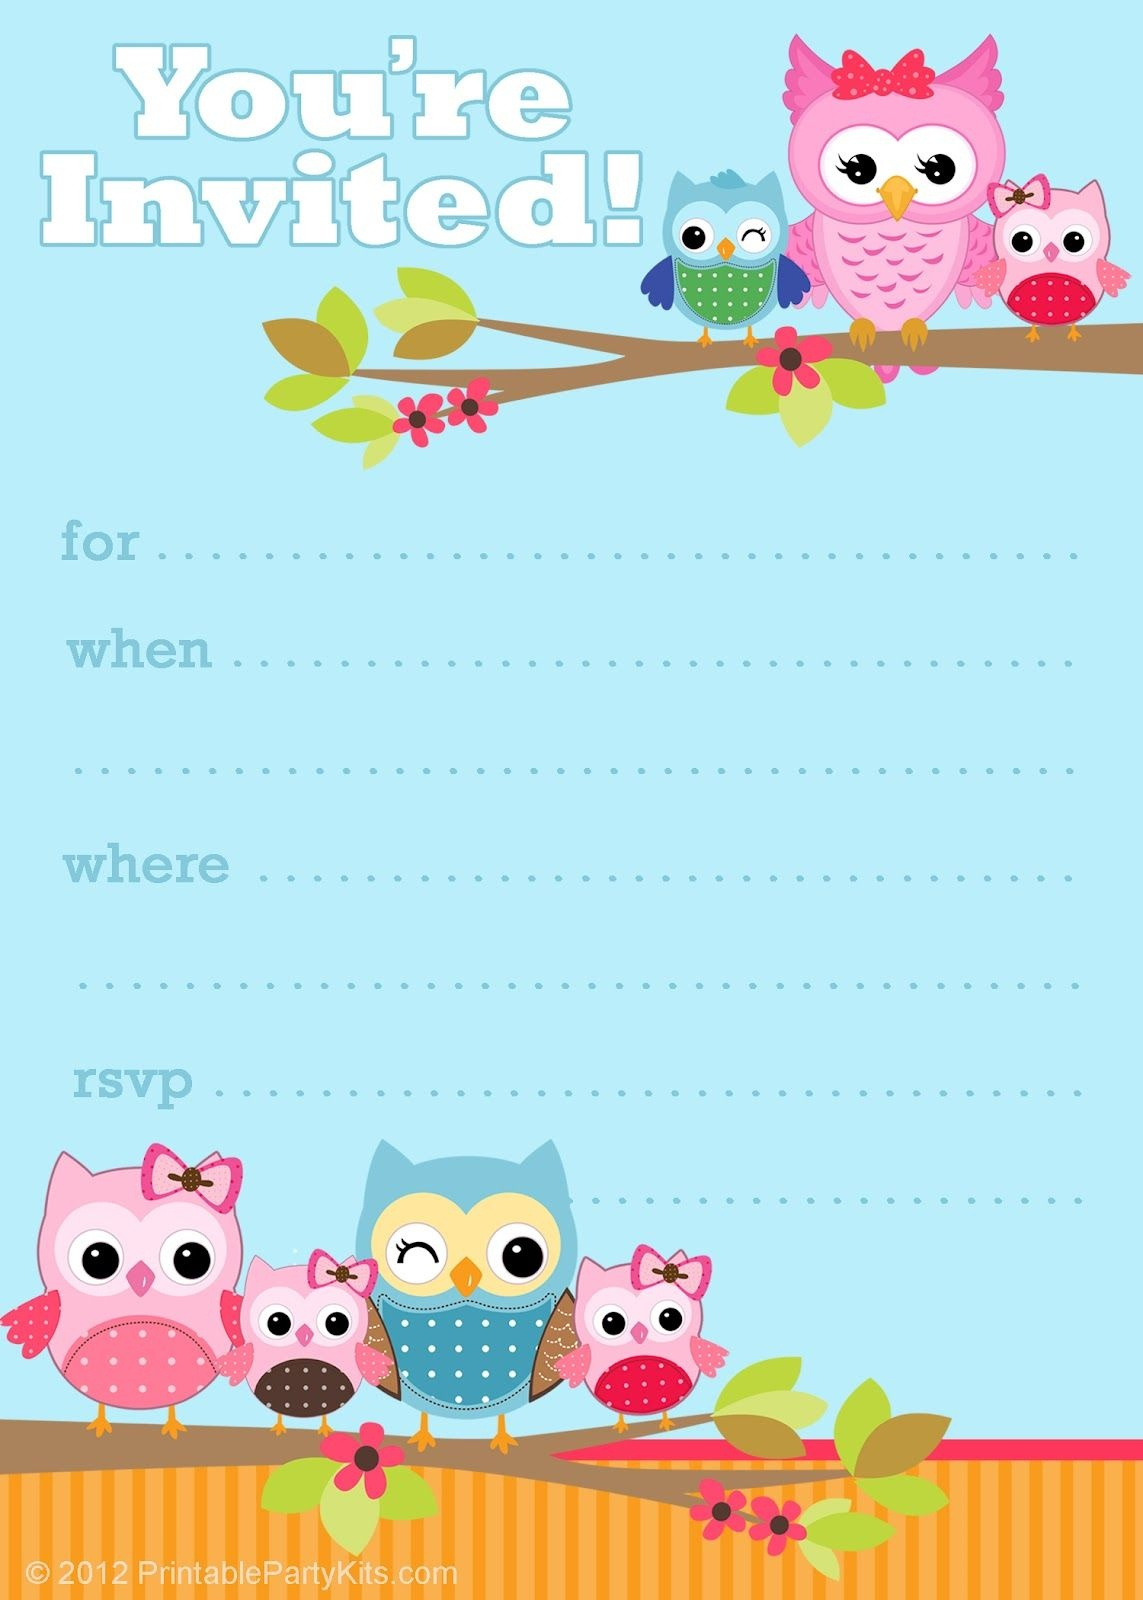 Free Printable Party Invitations: Cute Owl Invitations | Kids - Free Printable Birthday Invitations Pinterest